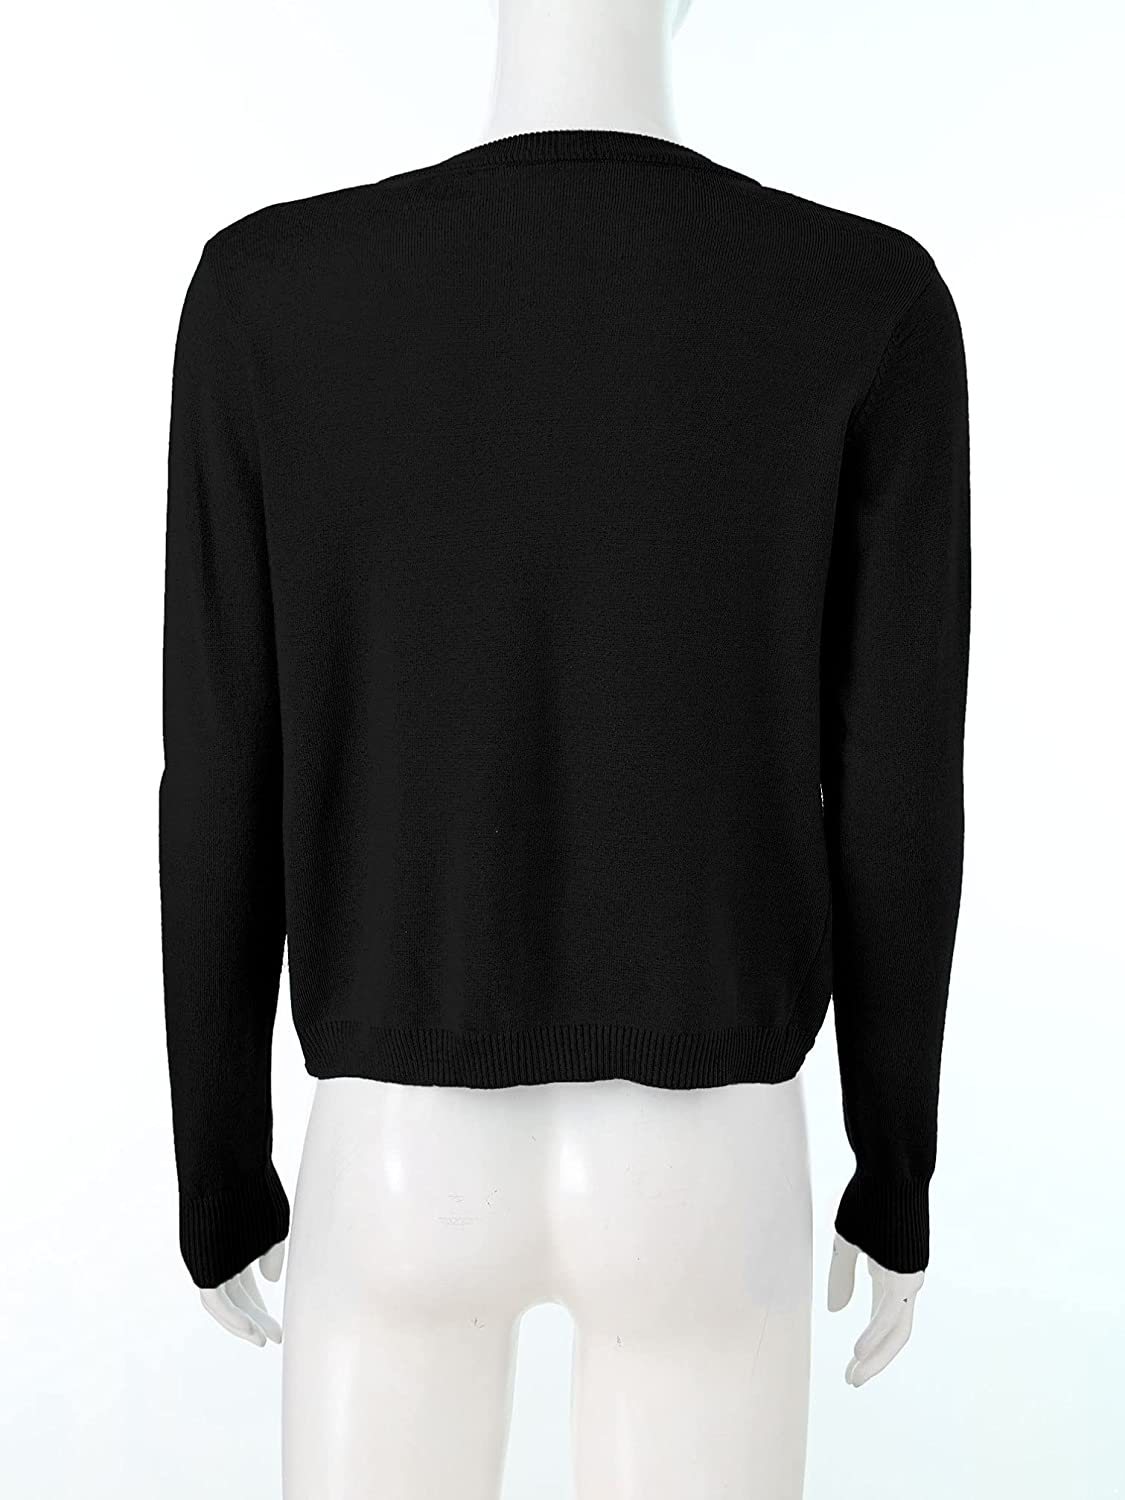 YiZYiF Womens Shrug Bolero Cardigan Long Sleeve Knit Sweater Jackets for Ladies with One Button Front